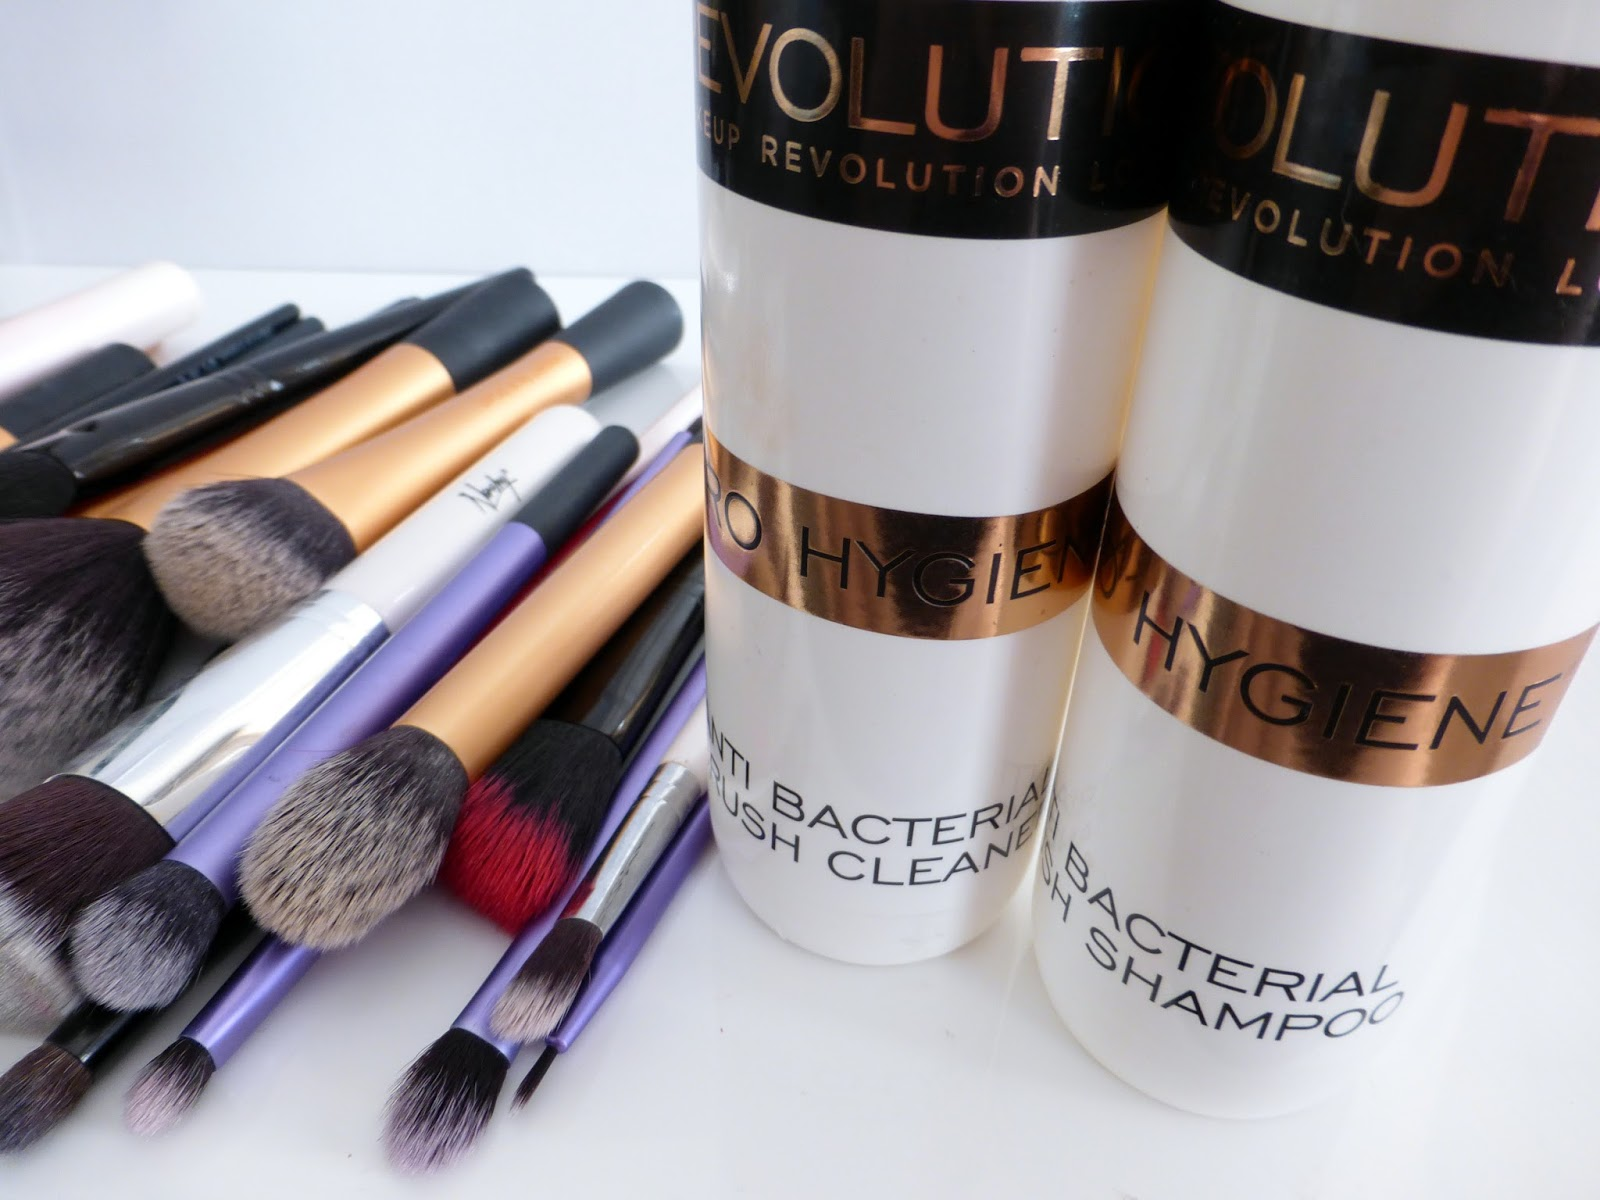 Makeup Revolution NEW Pro Tools!